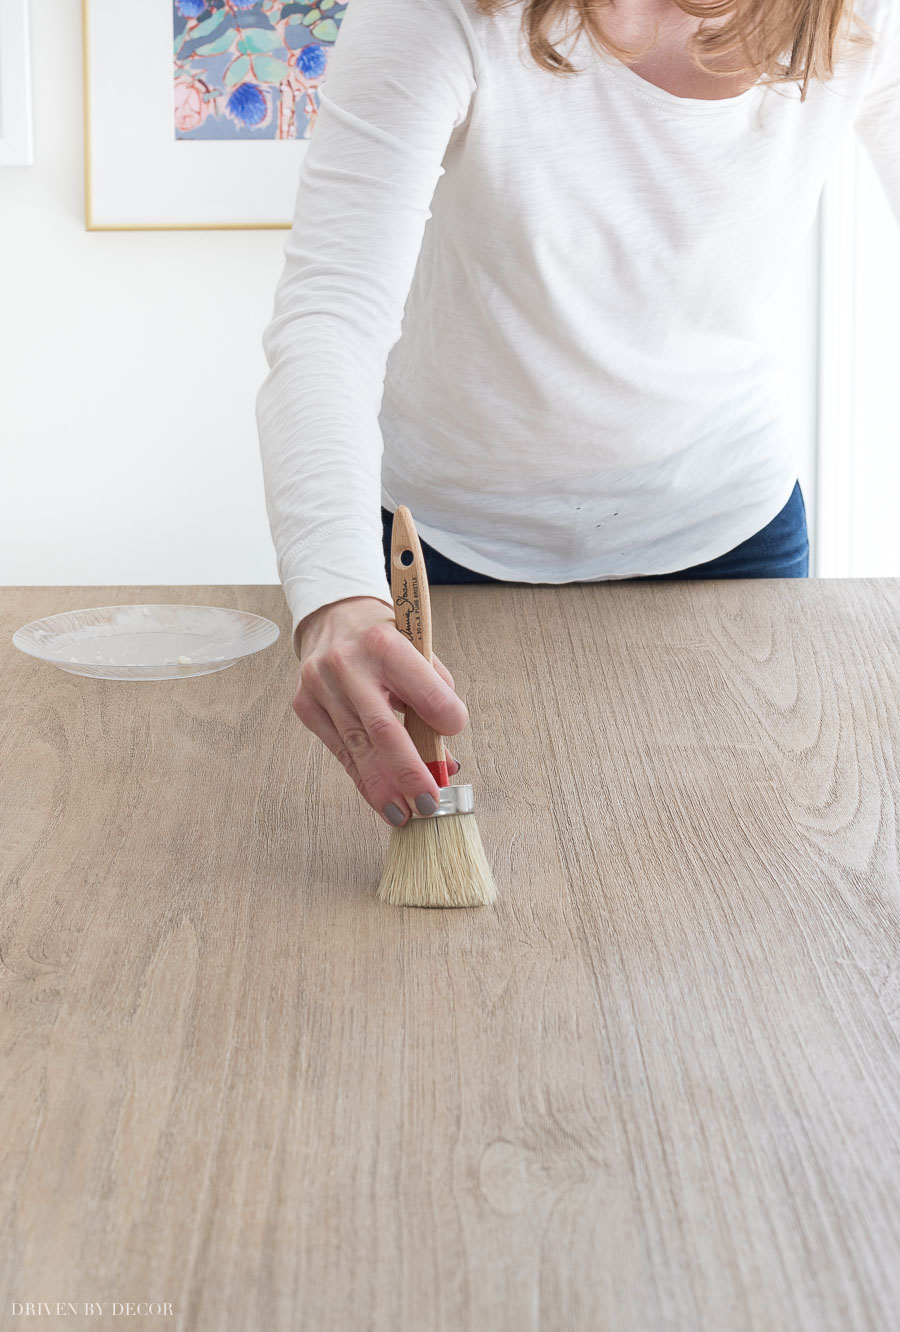 This is so helpful! Shows you how to apply wax to a wood table to seal and protect it!